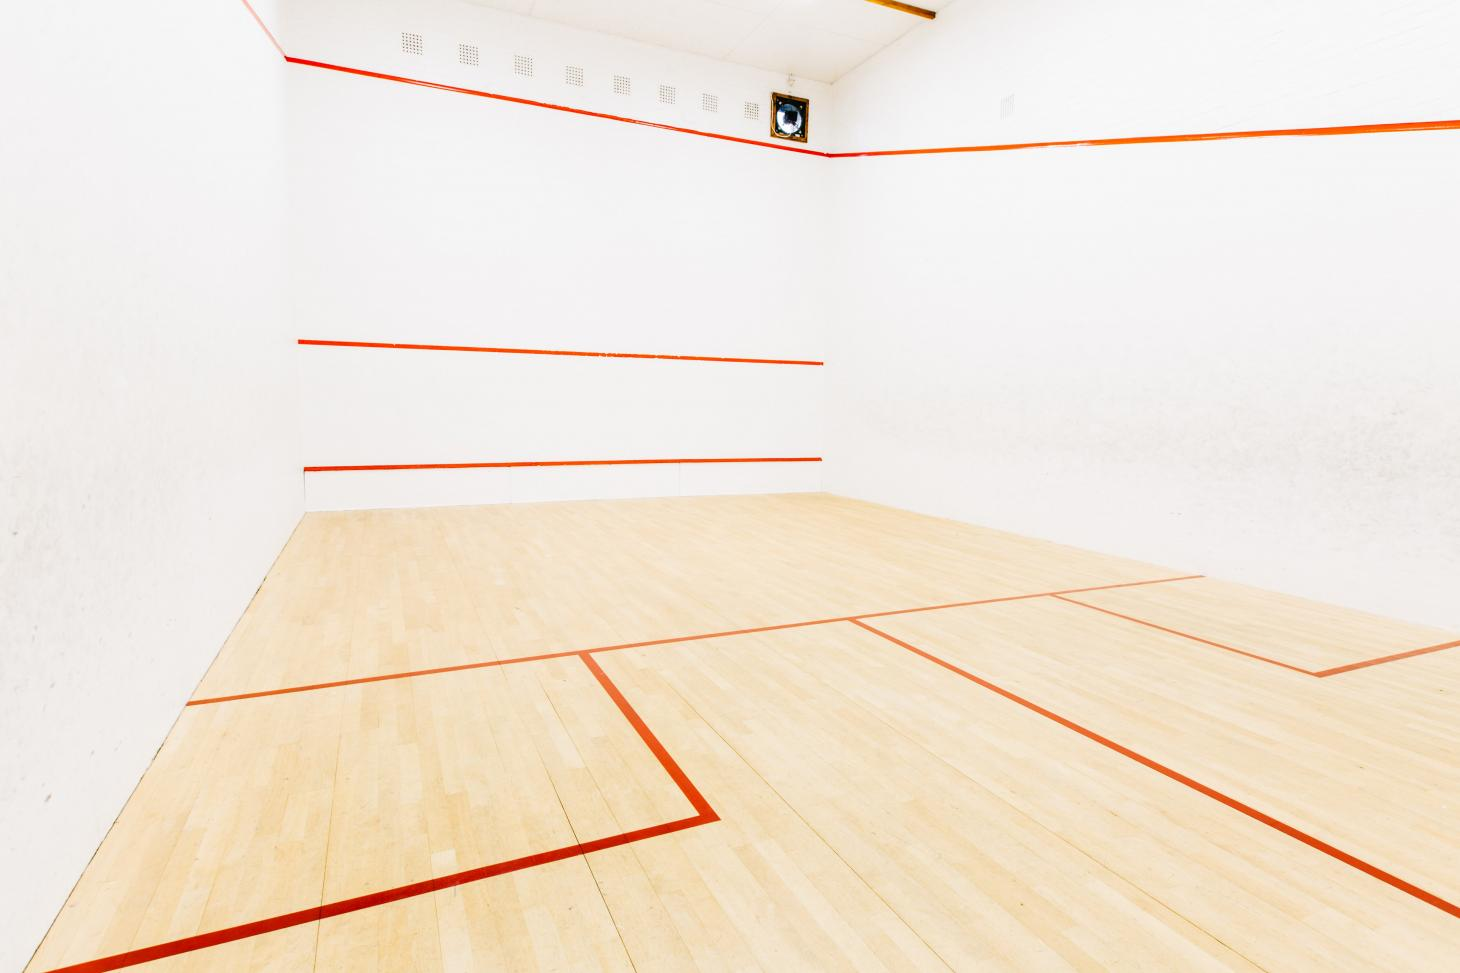 Swan Pool and Leisure Centre Indoor   Hard squash court